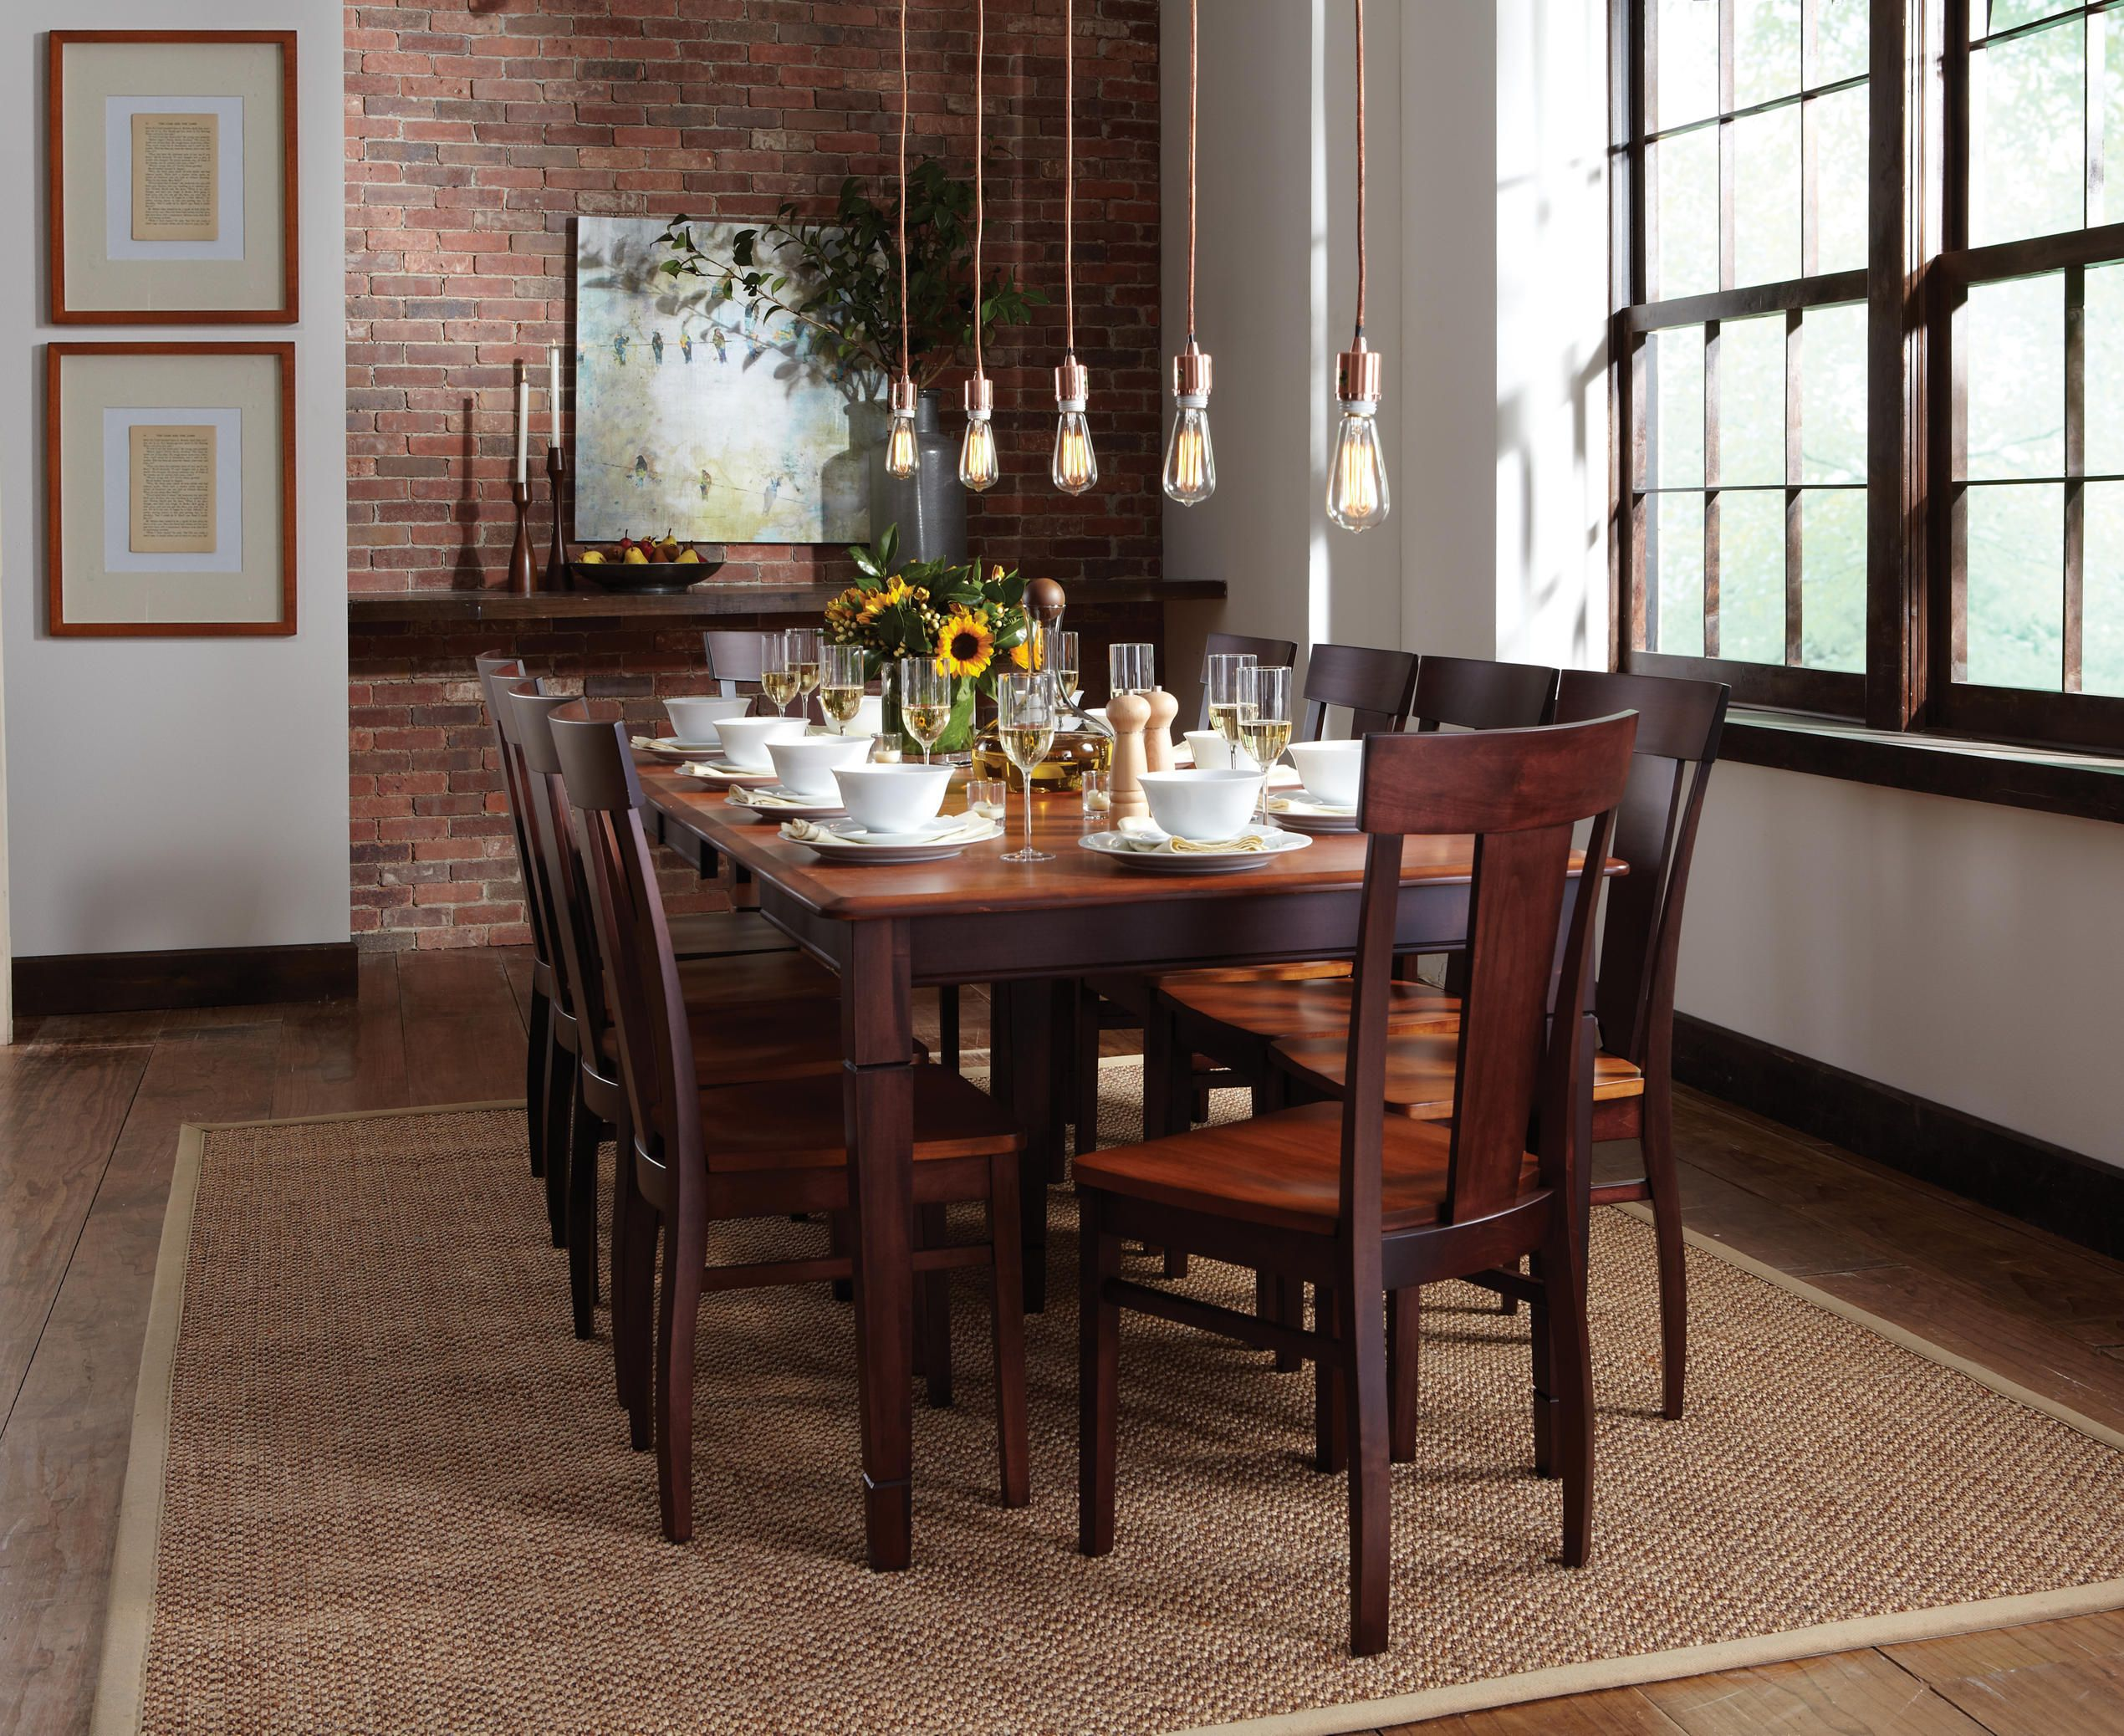 a smooth maple finish gives tasty appeal to the anniversary dining